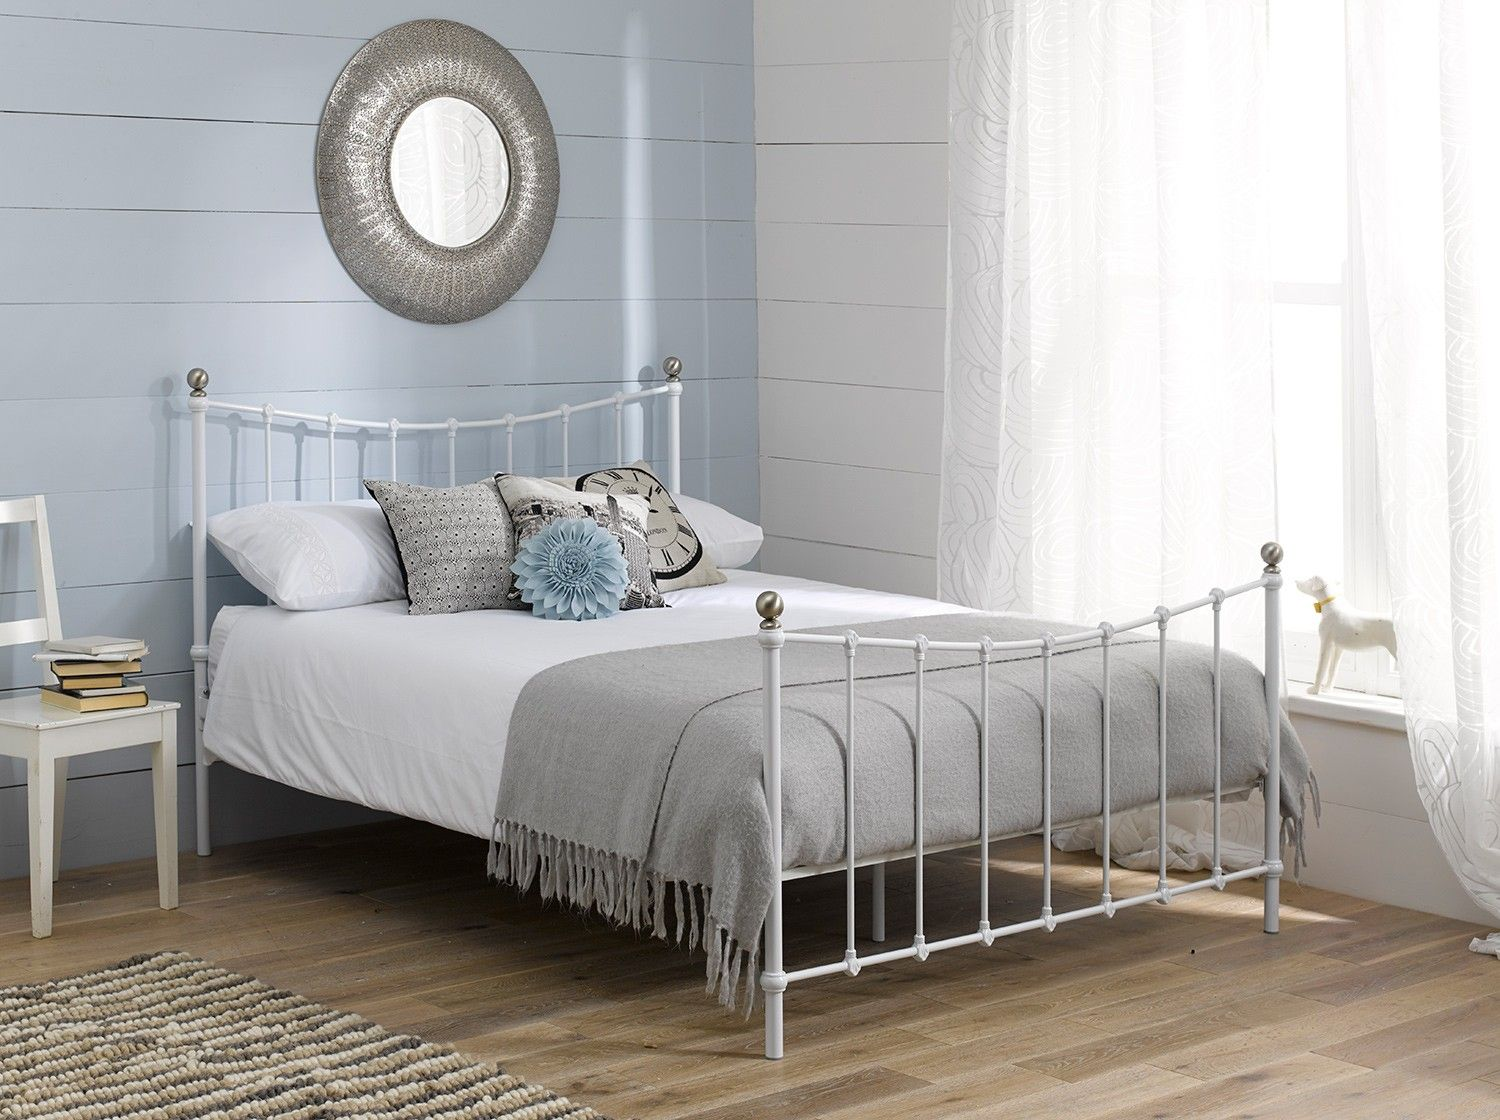 Fancy Wrought Iron Beds With Silver Color White Iron Beds